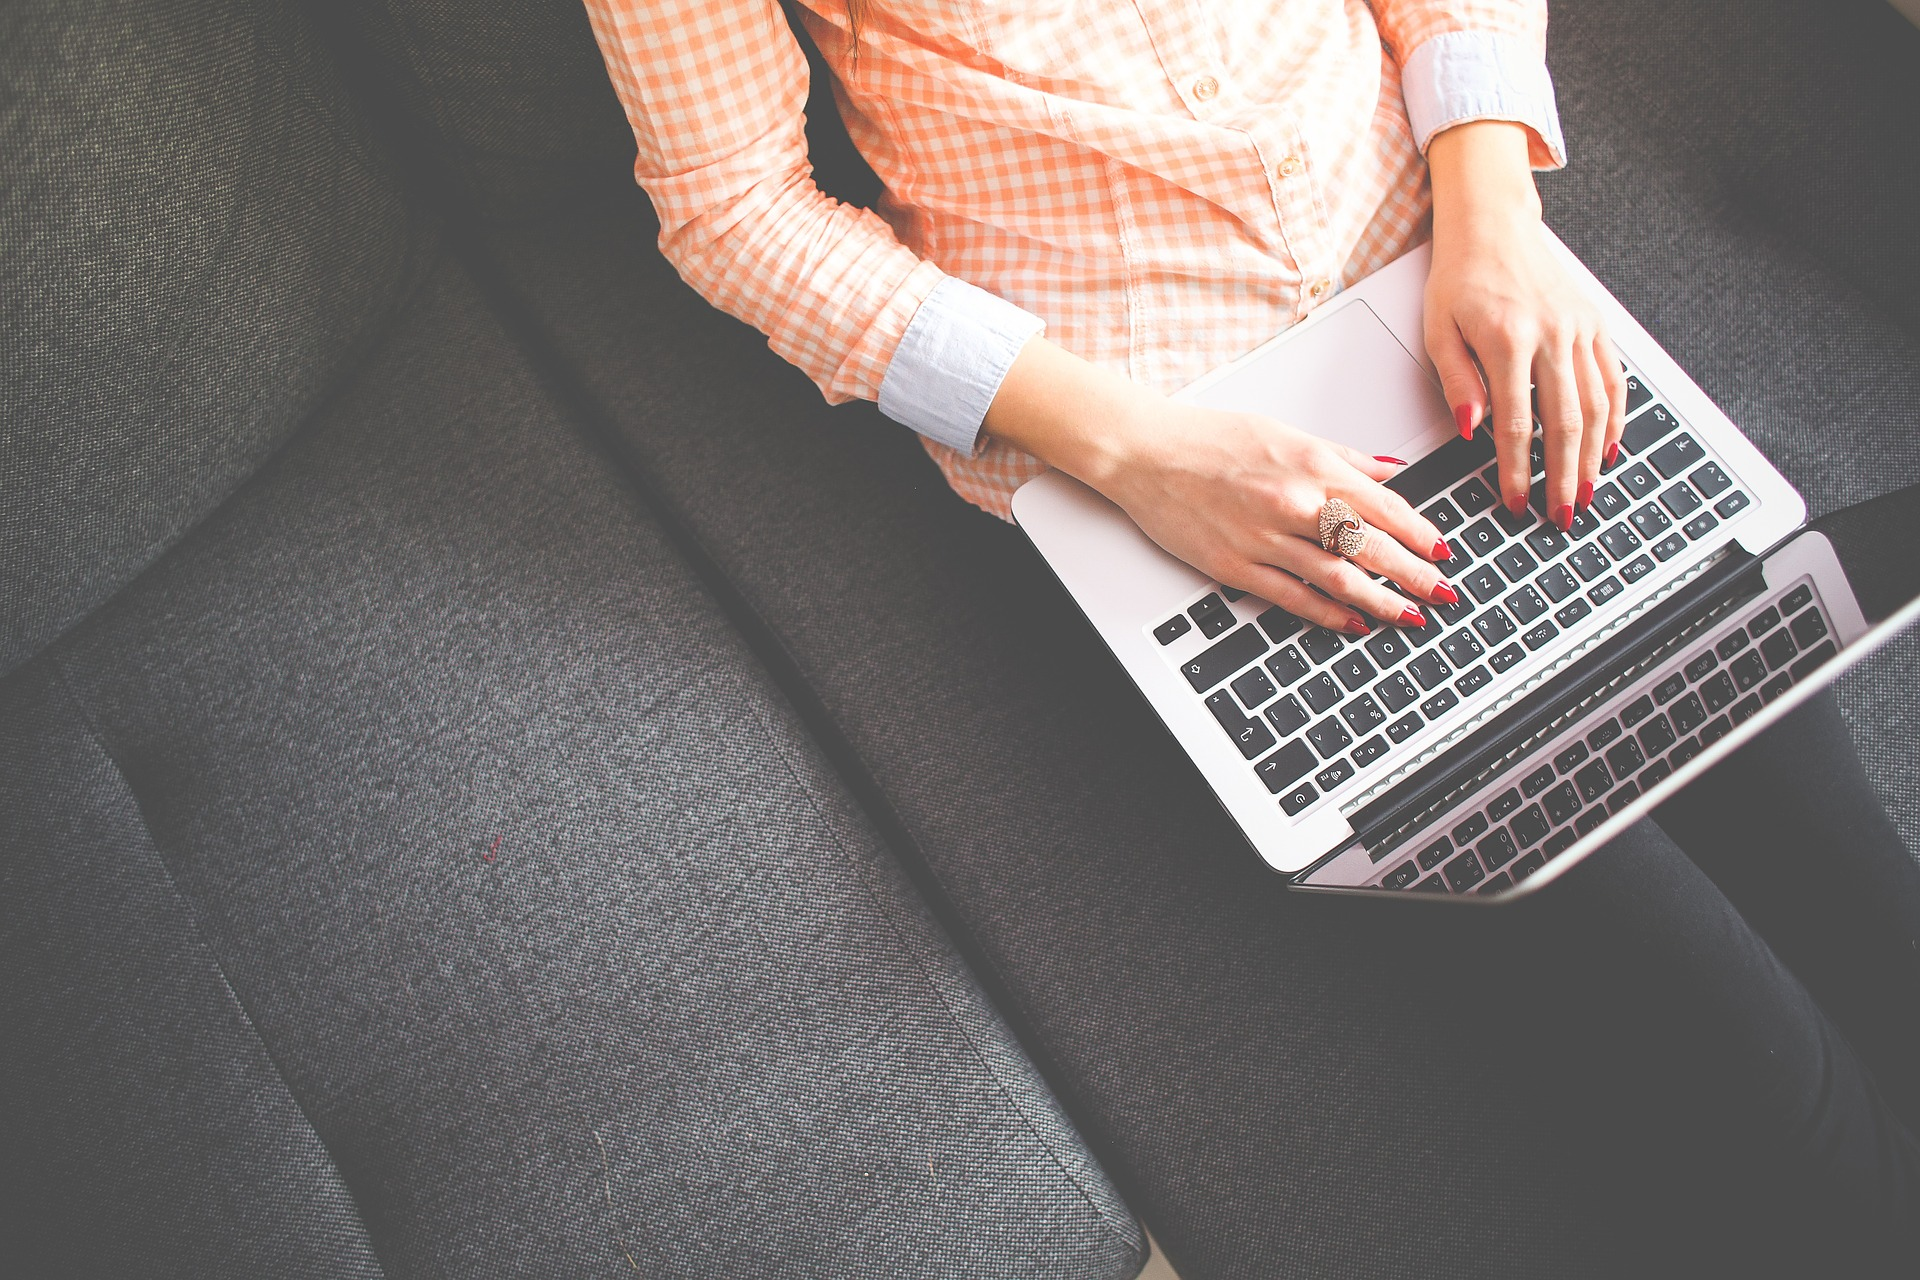 Content distribution ideas: How to expand your content reach